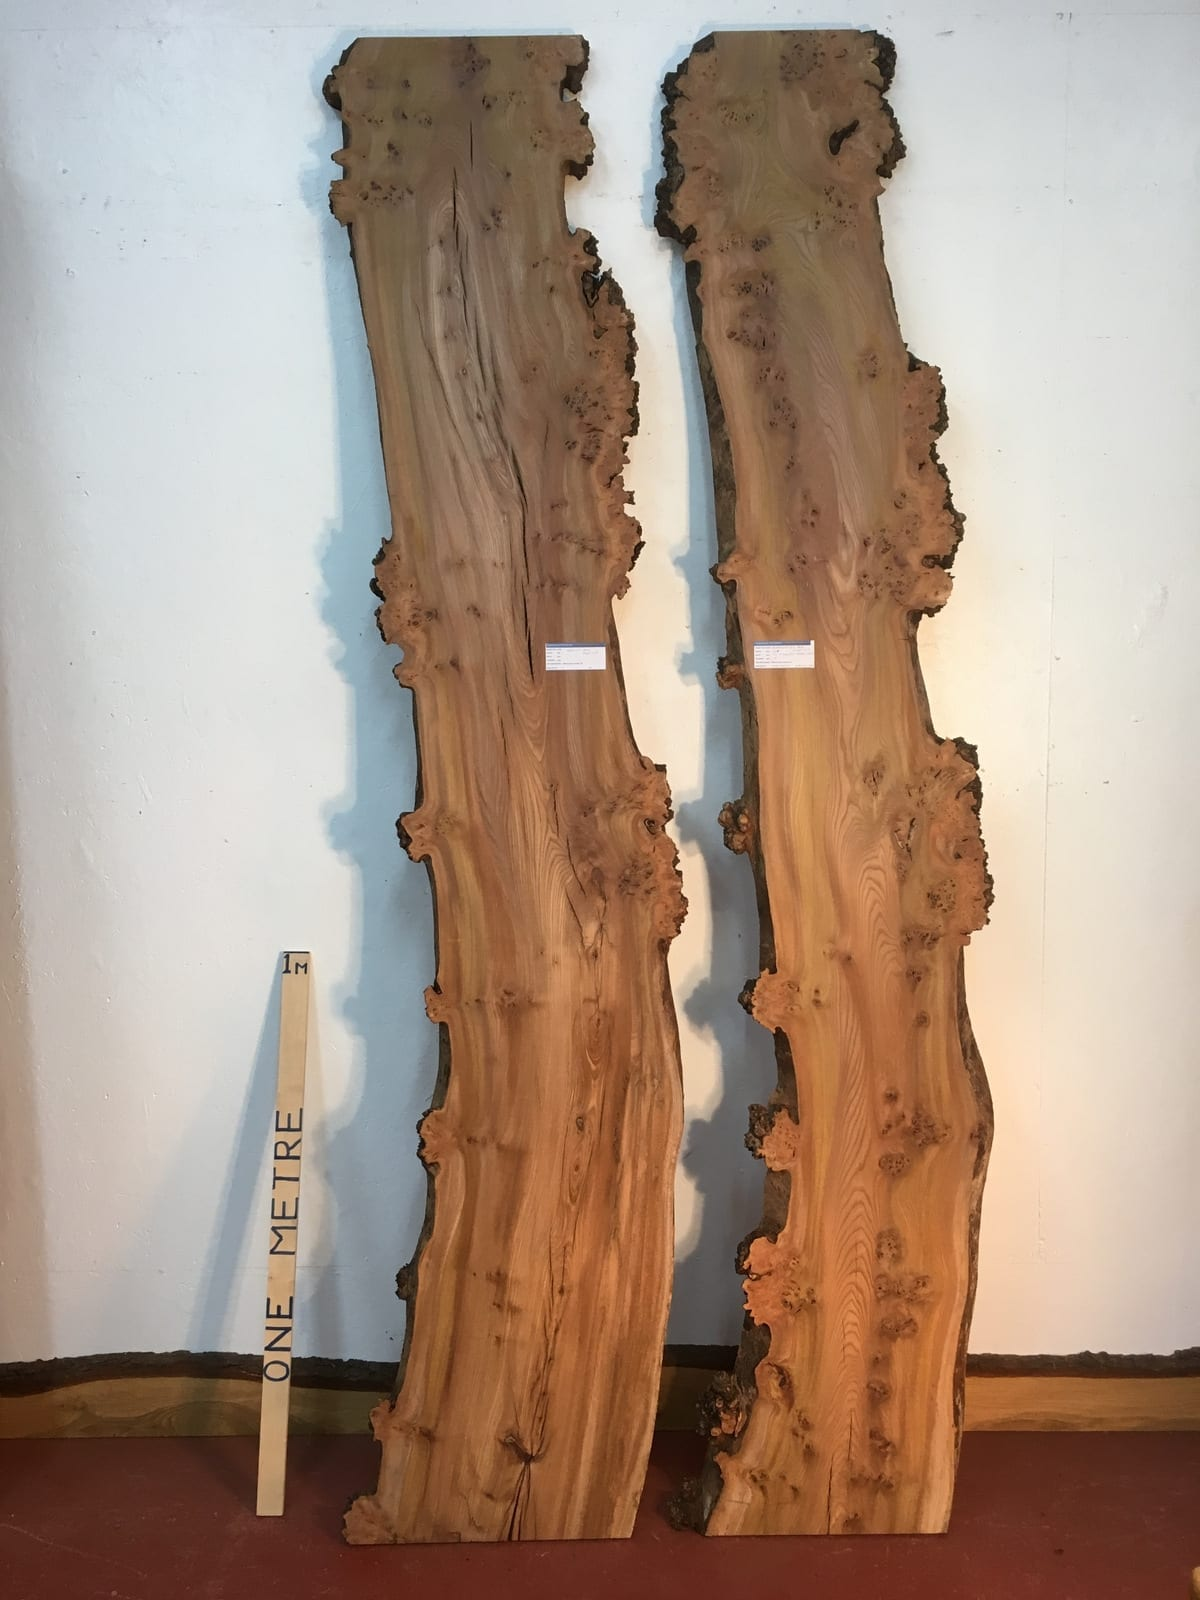 BURRY ELM 1536P-2/3 Paired Set Natural Waney Live Edge Slabs Planed Kiln Dried Seasoned Hardwood Board Thickness 4cm Wildwood River Tables